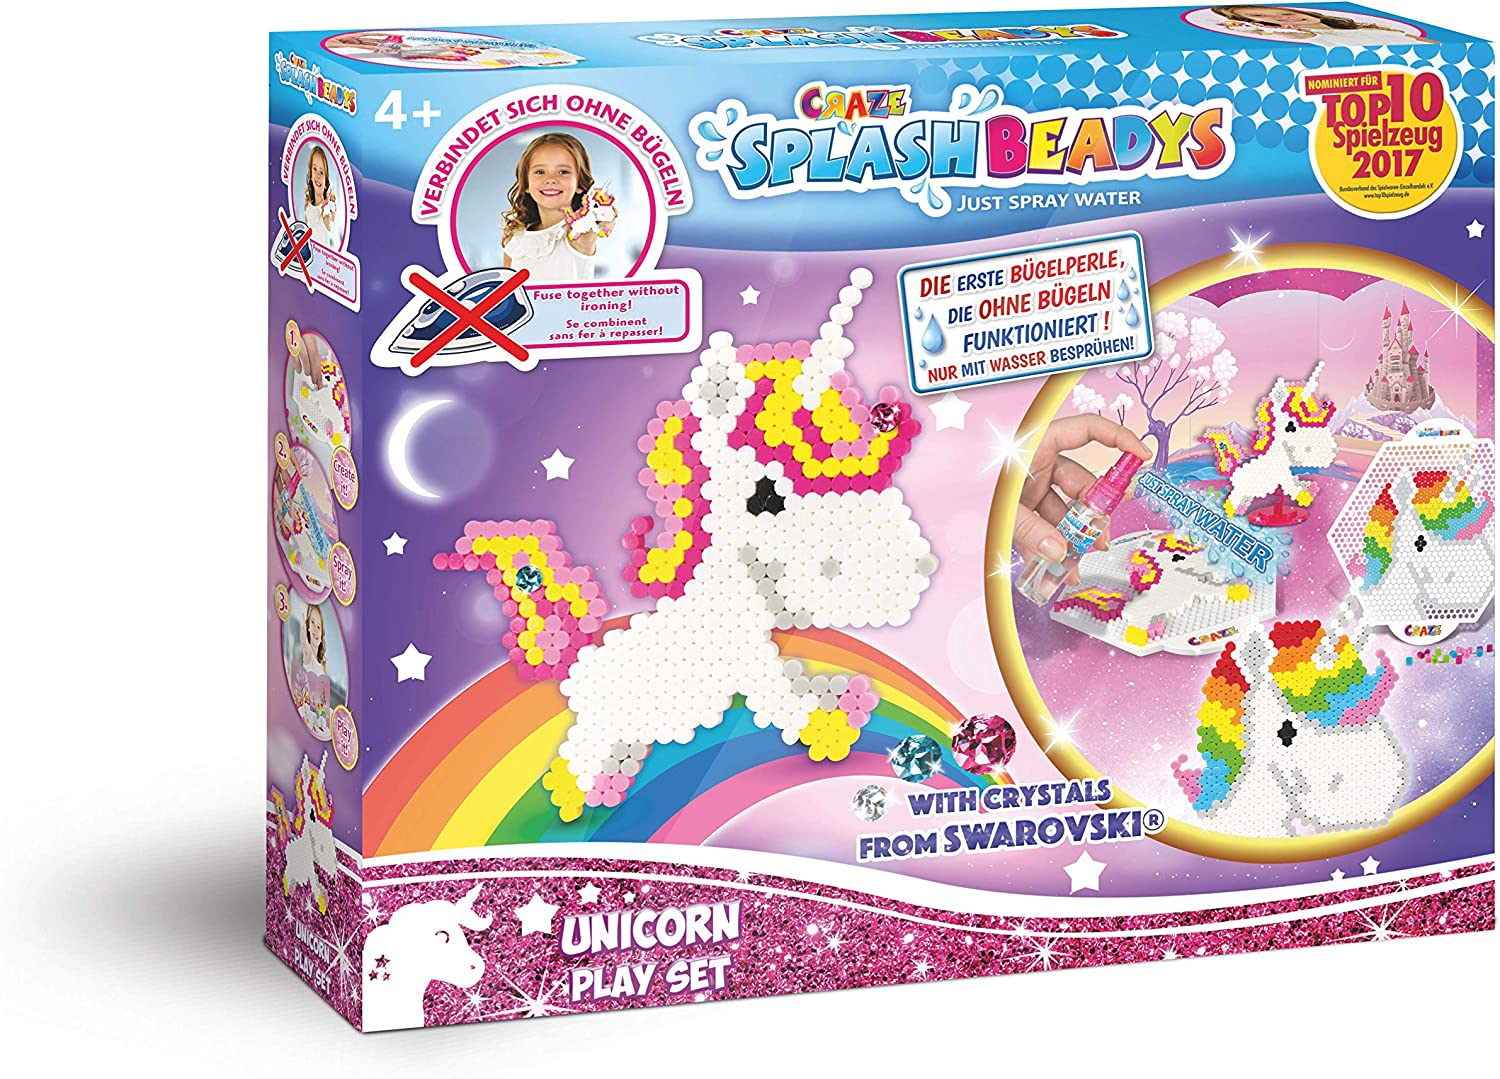 CRAZE- Cuentas de fusibles Fuse Splash BEADYS Unicorn Play-Set Water Beads Craft Kit para niños 58467, Multicolor: Amazon.es: Juguetes y juegos